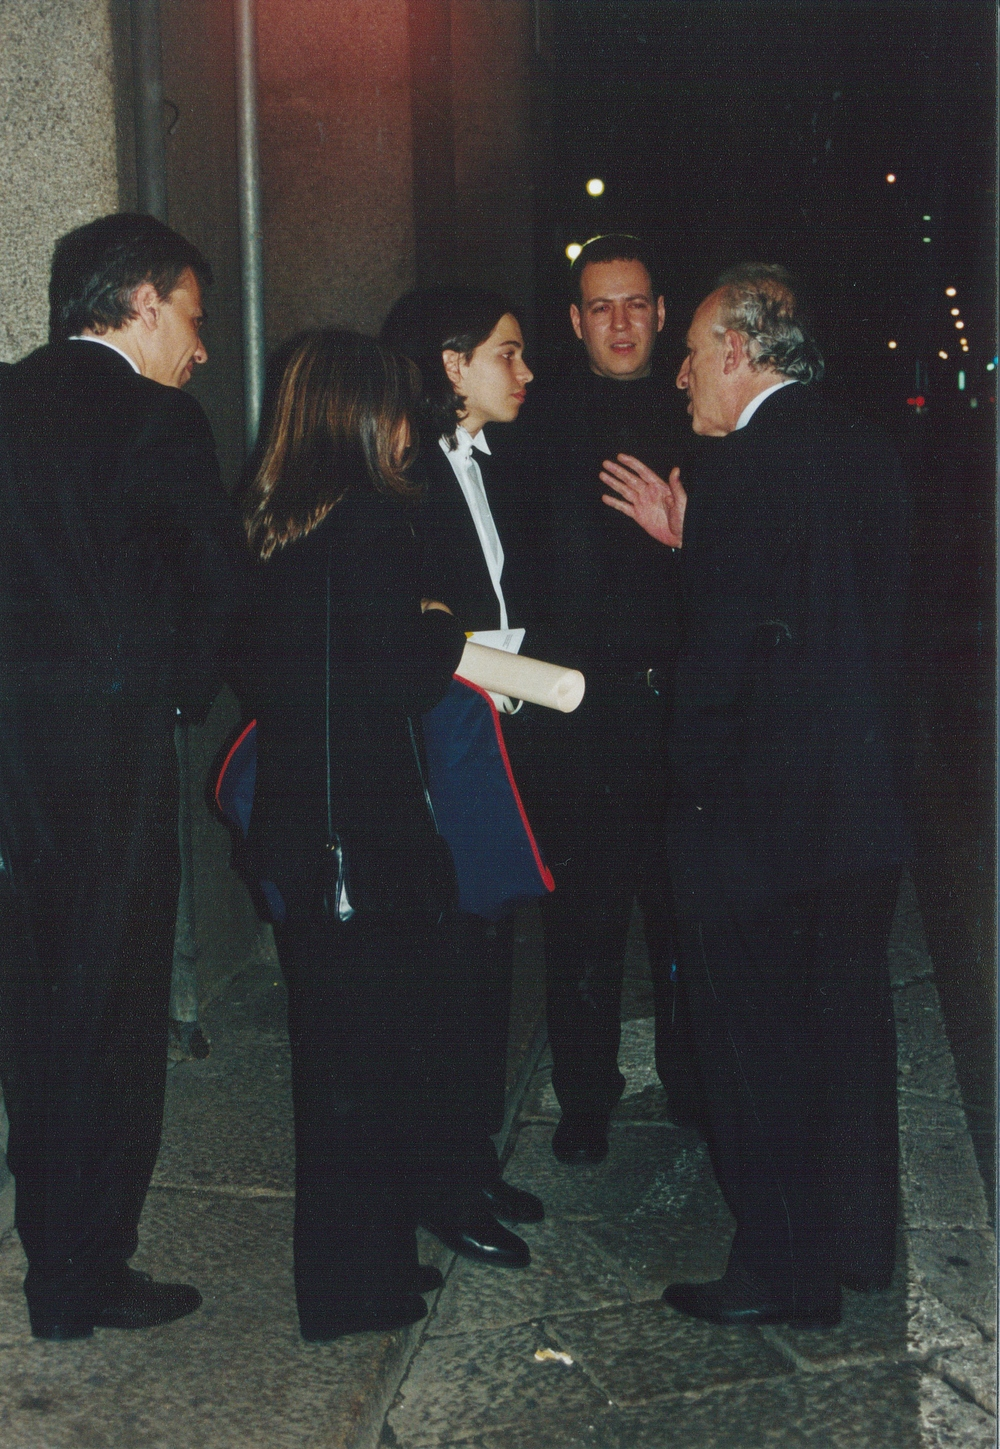 With Maurizio Pollini and Horacio Lavandera, Milan